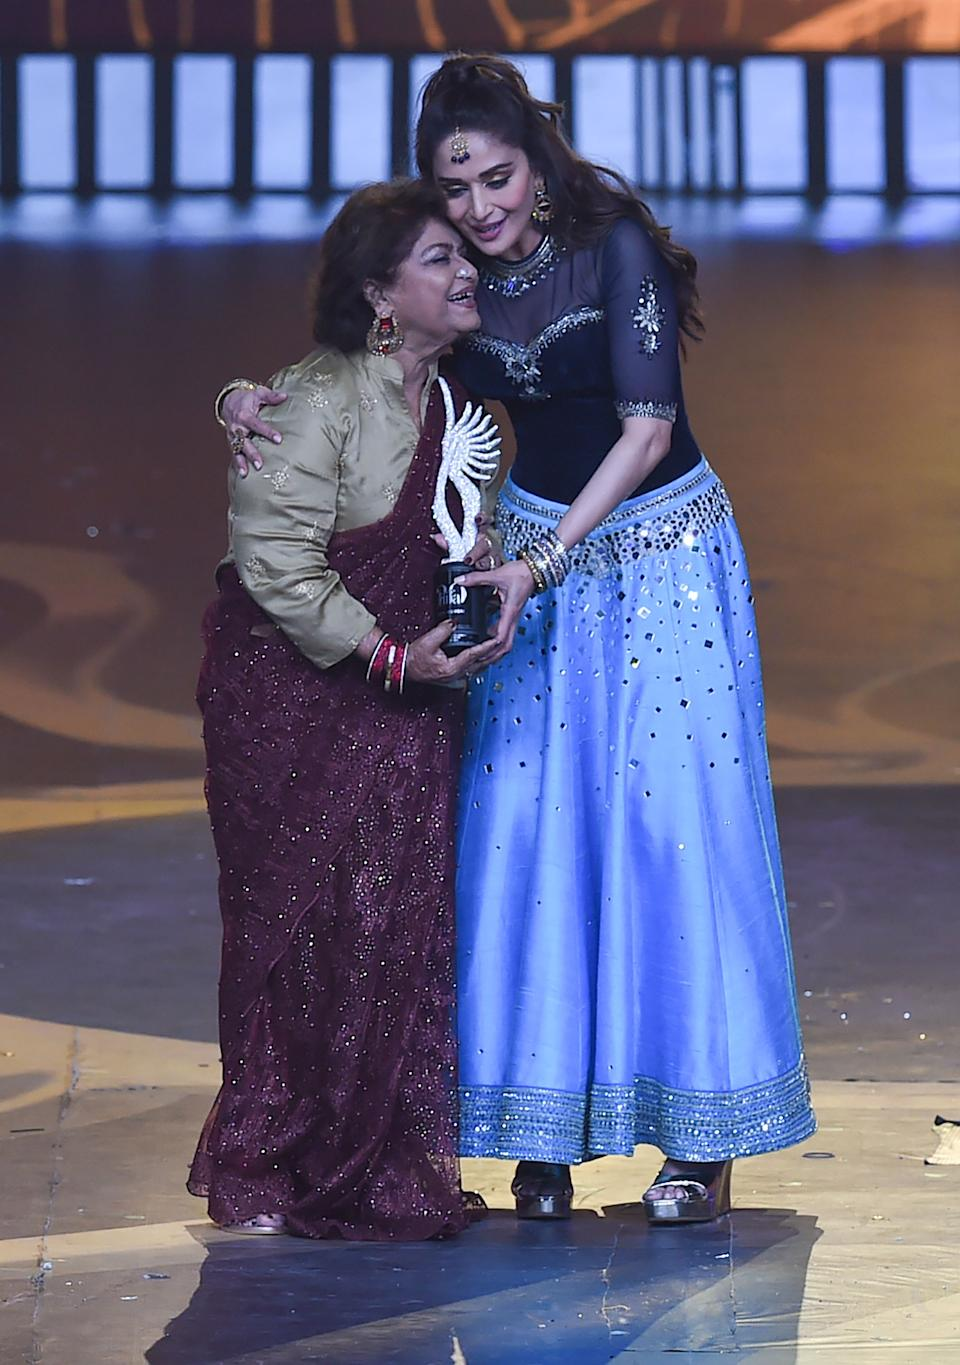 Bollywood choreographer Saroj Khan (L) hugs actress Madhuri Dixit after receiving a special award for Best Choreographer in Last 20 Years, during the 20th International Indian Film Academy (IIFA) Awards at NSCI Dome in Mumbai on September 18, 2019. (Photo by INDRANIL MUKHERJEE / AFP)        (Photo credit should read INDRANIL MUKHERJEE/AFP via Getty Images)